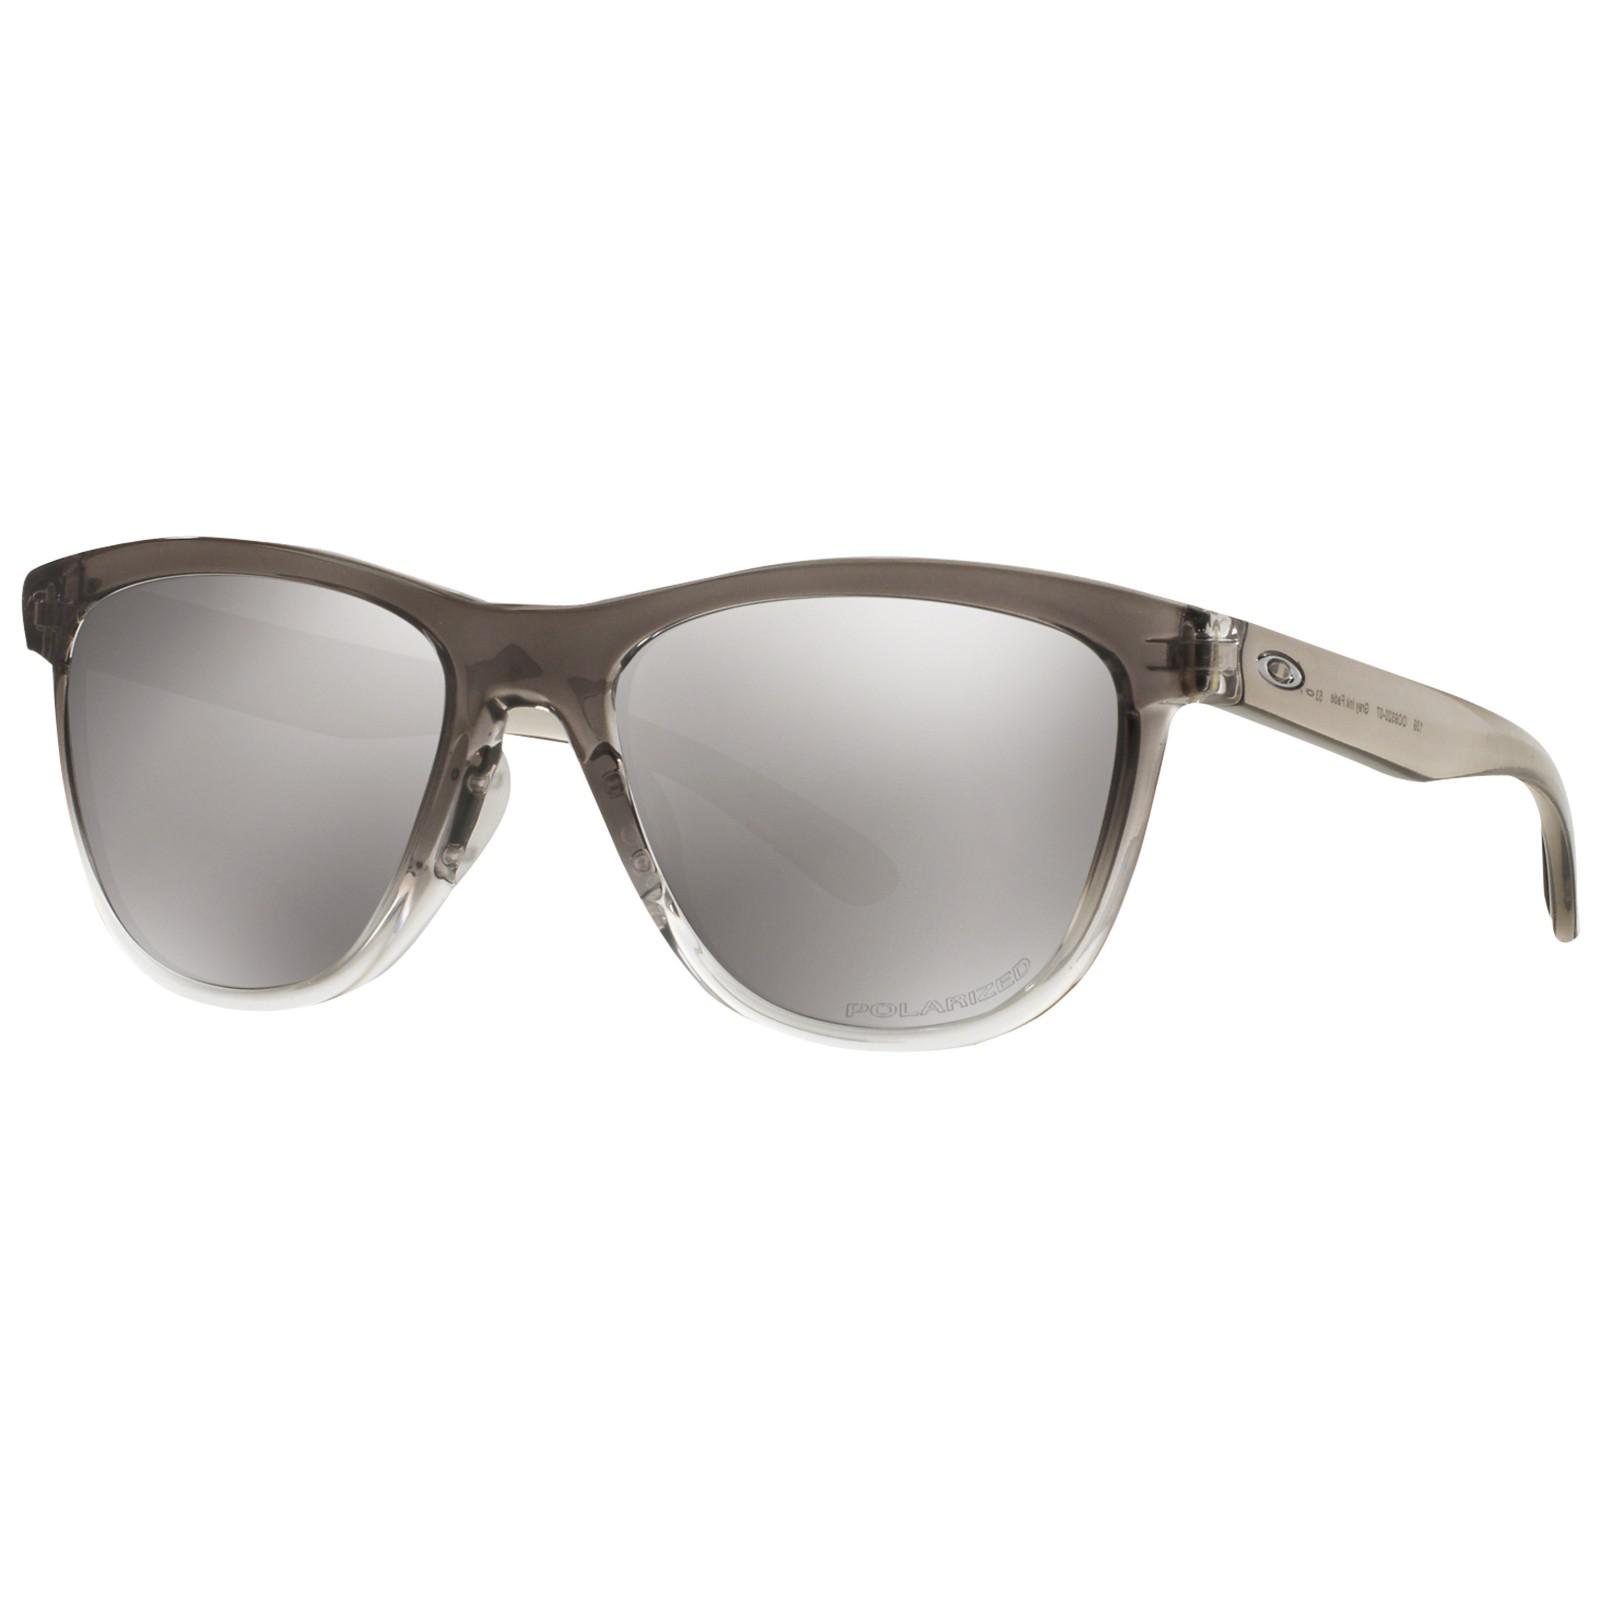 4bd3f2c7e0cb95 Oakley Oo9320 Polarised Moonlighter D-frame Sunglasses in Gray for ...